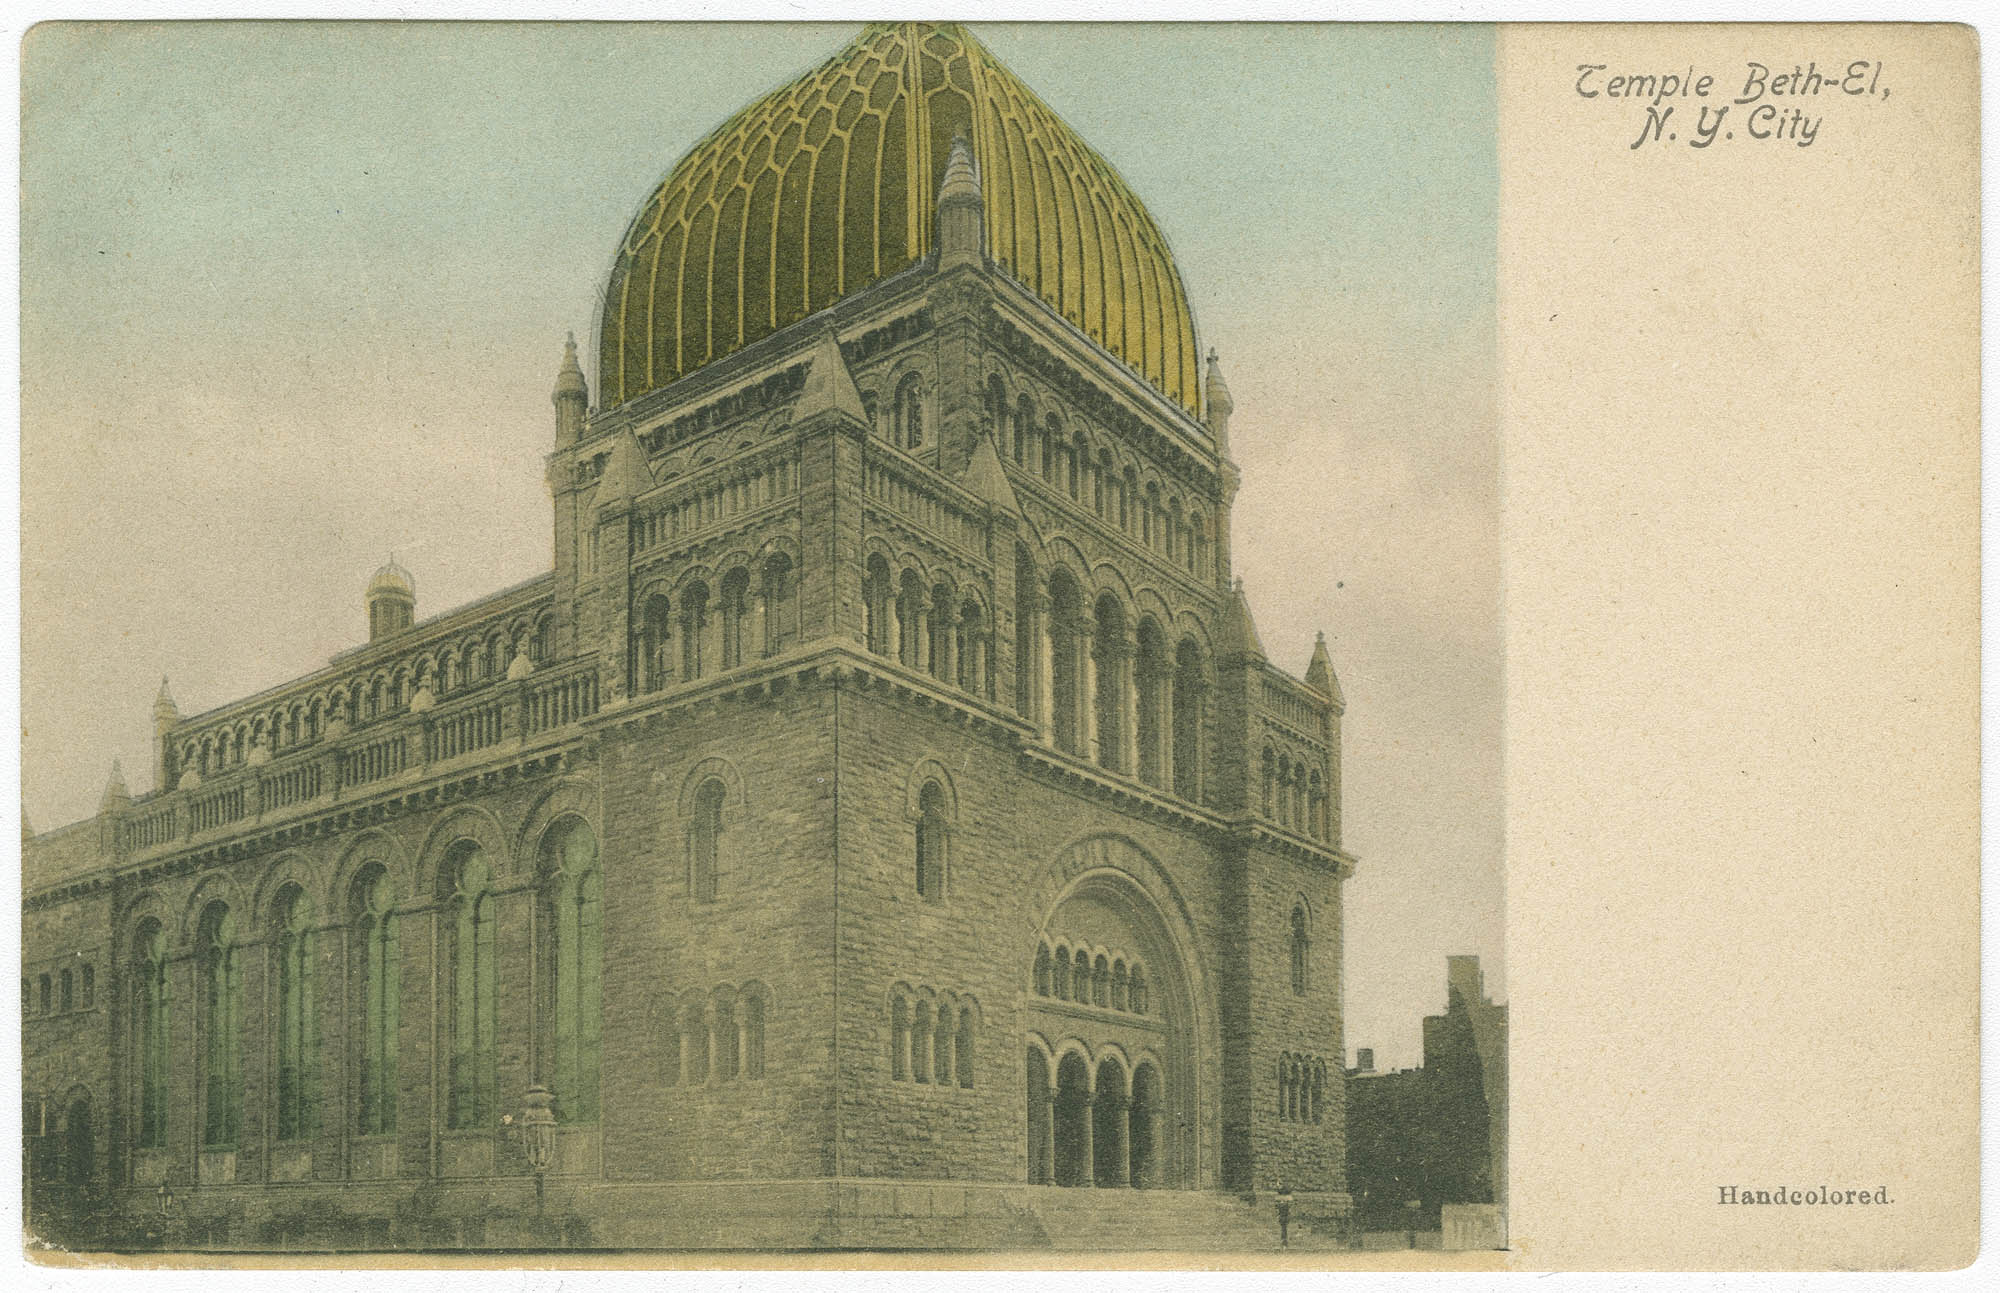 Temple Beth-El, N.Y. City